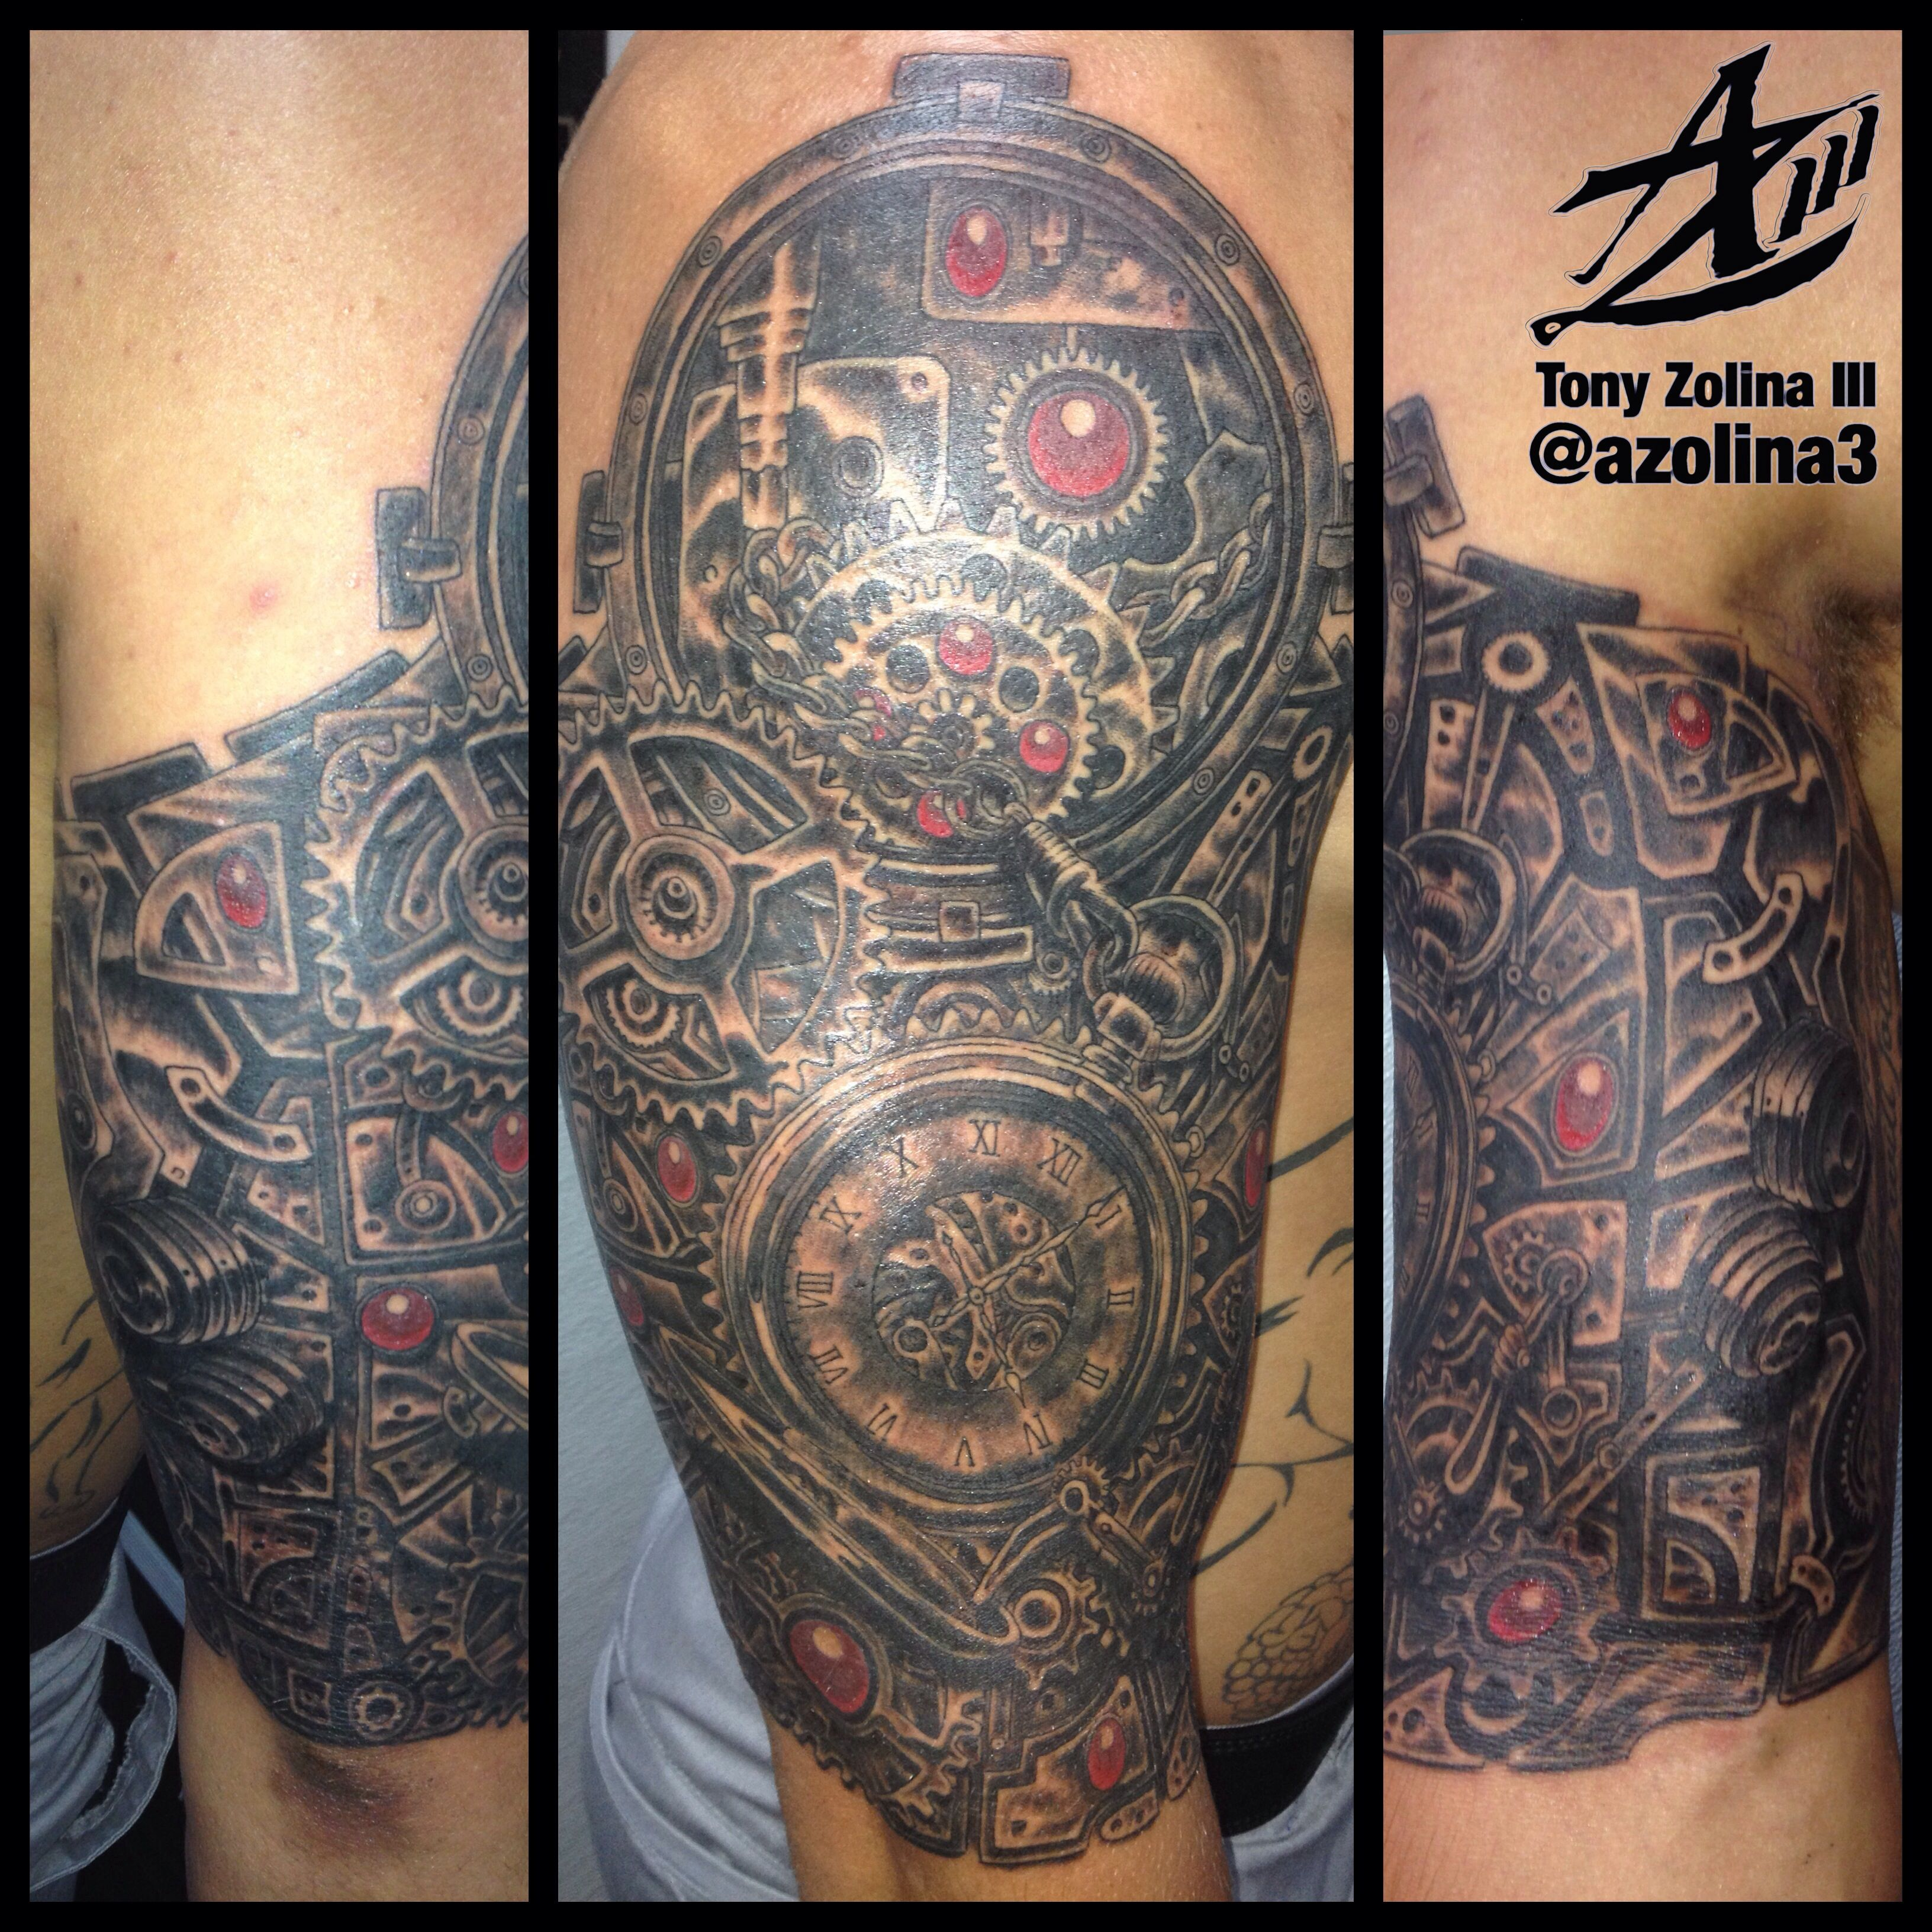 Tattoo gear tattoo sleeve mechanic tattoo mechanical tattoo gears - Steampunk Pocket Watch And Gears Sleeve Done In One Hour Session Find This Pin And More On Aquanaut Tattoo